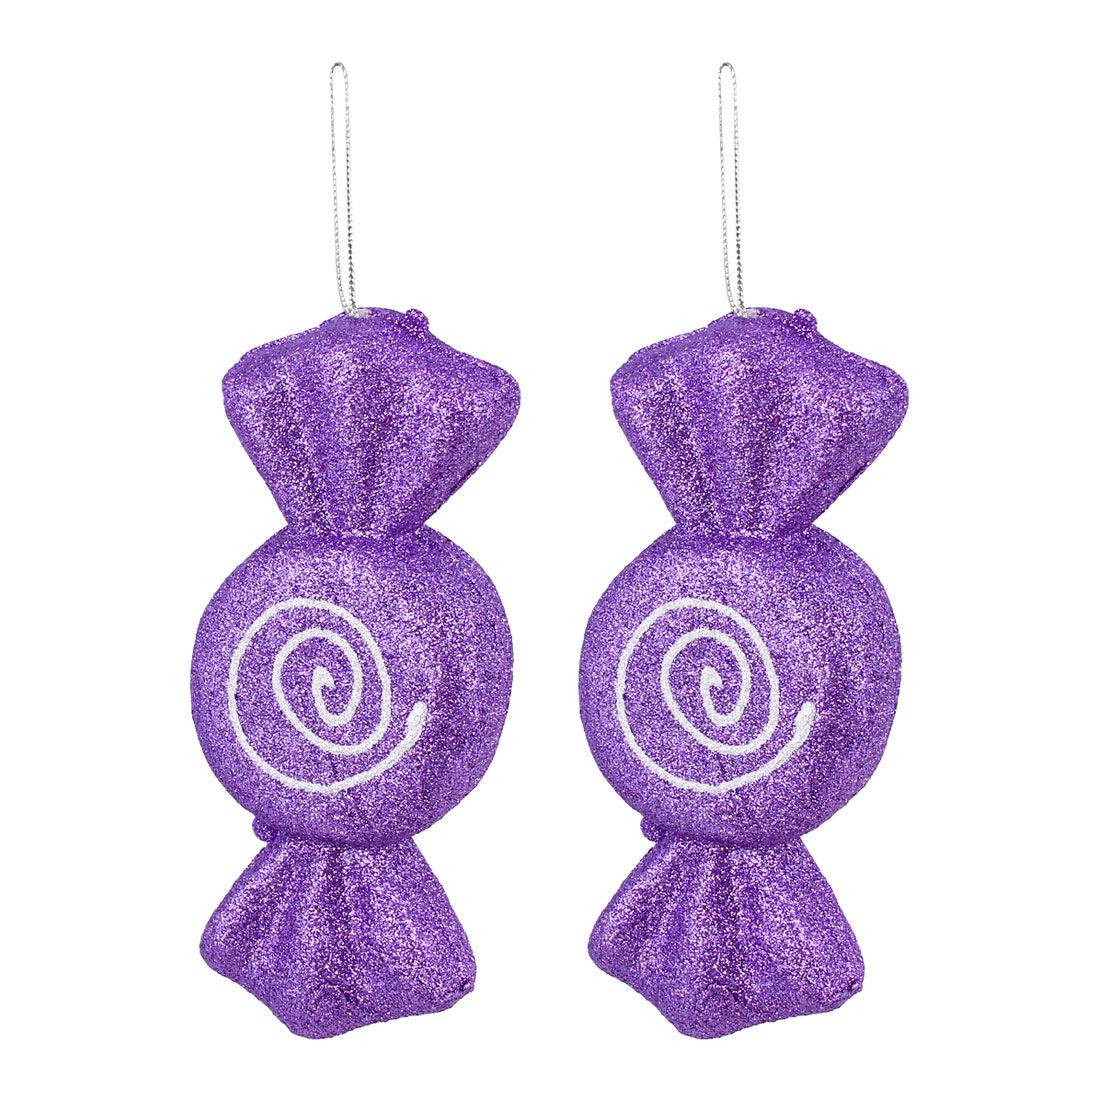 2 Pcs Glittery Hanging Christmas Candy Confectionery Pendant Purple for Xmas Tree Decor